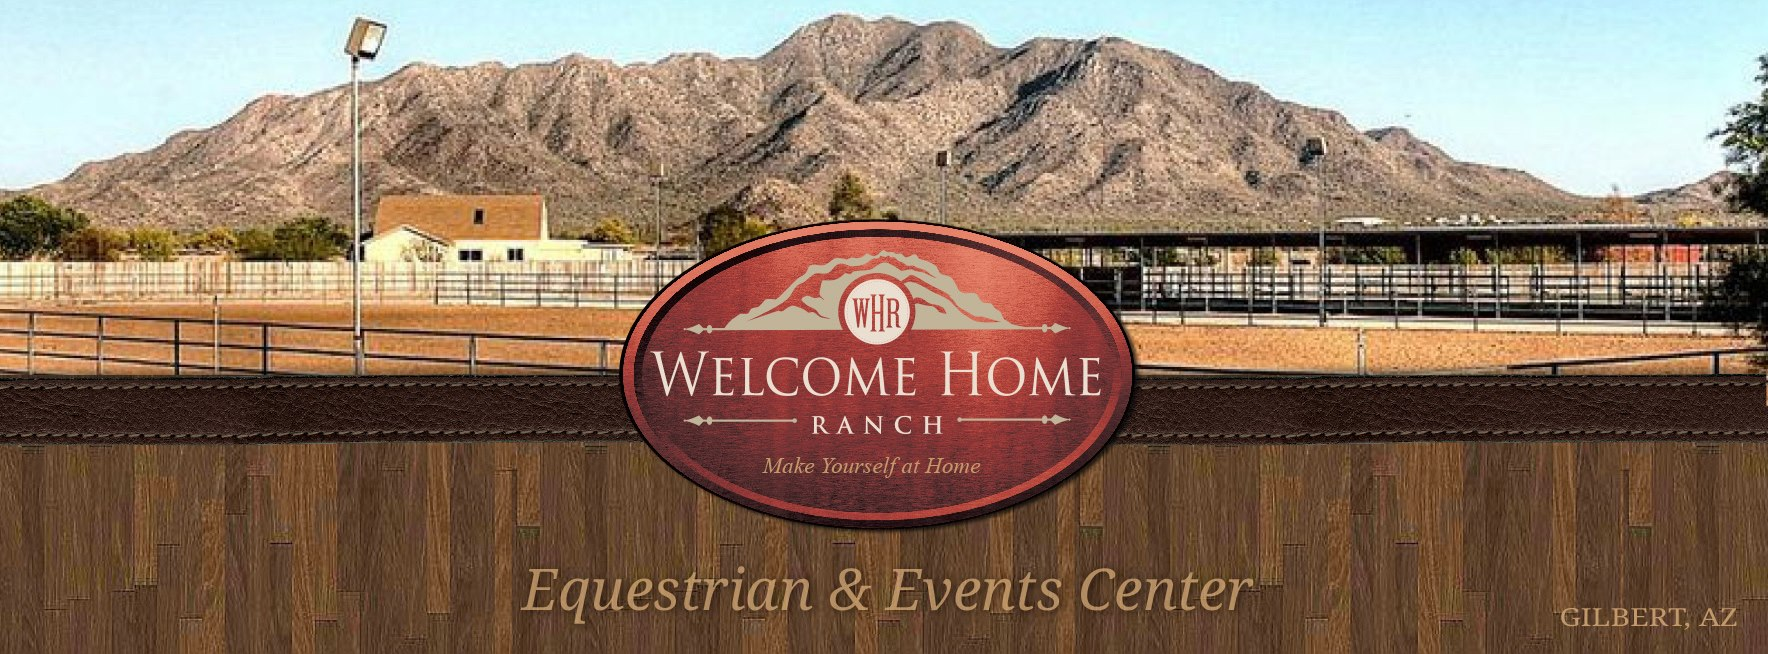 Welcome Home Ranch May 5th  U0026 39 13